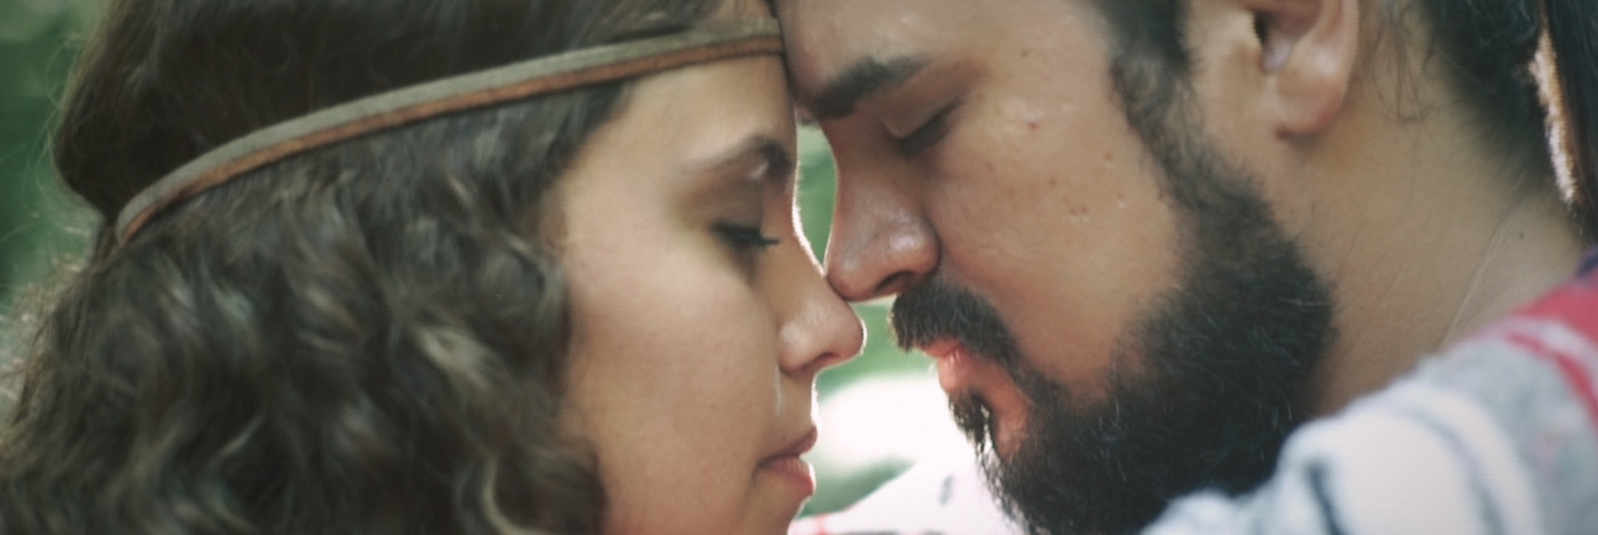 Juliana + Fábio